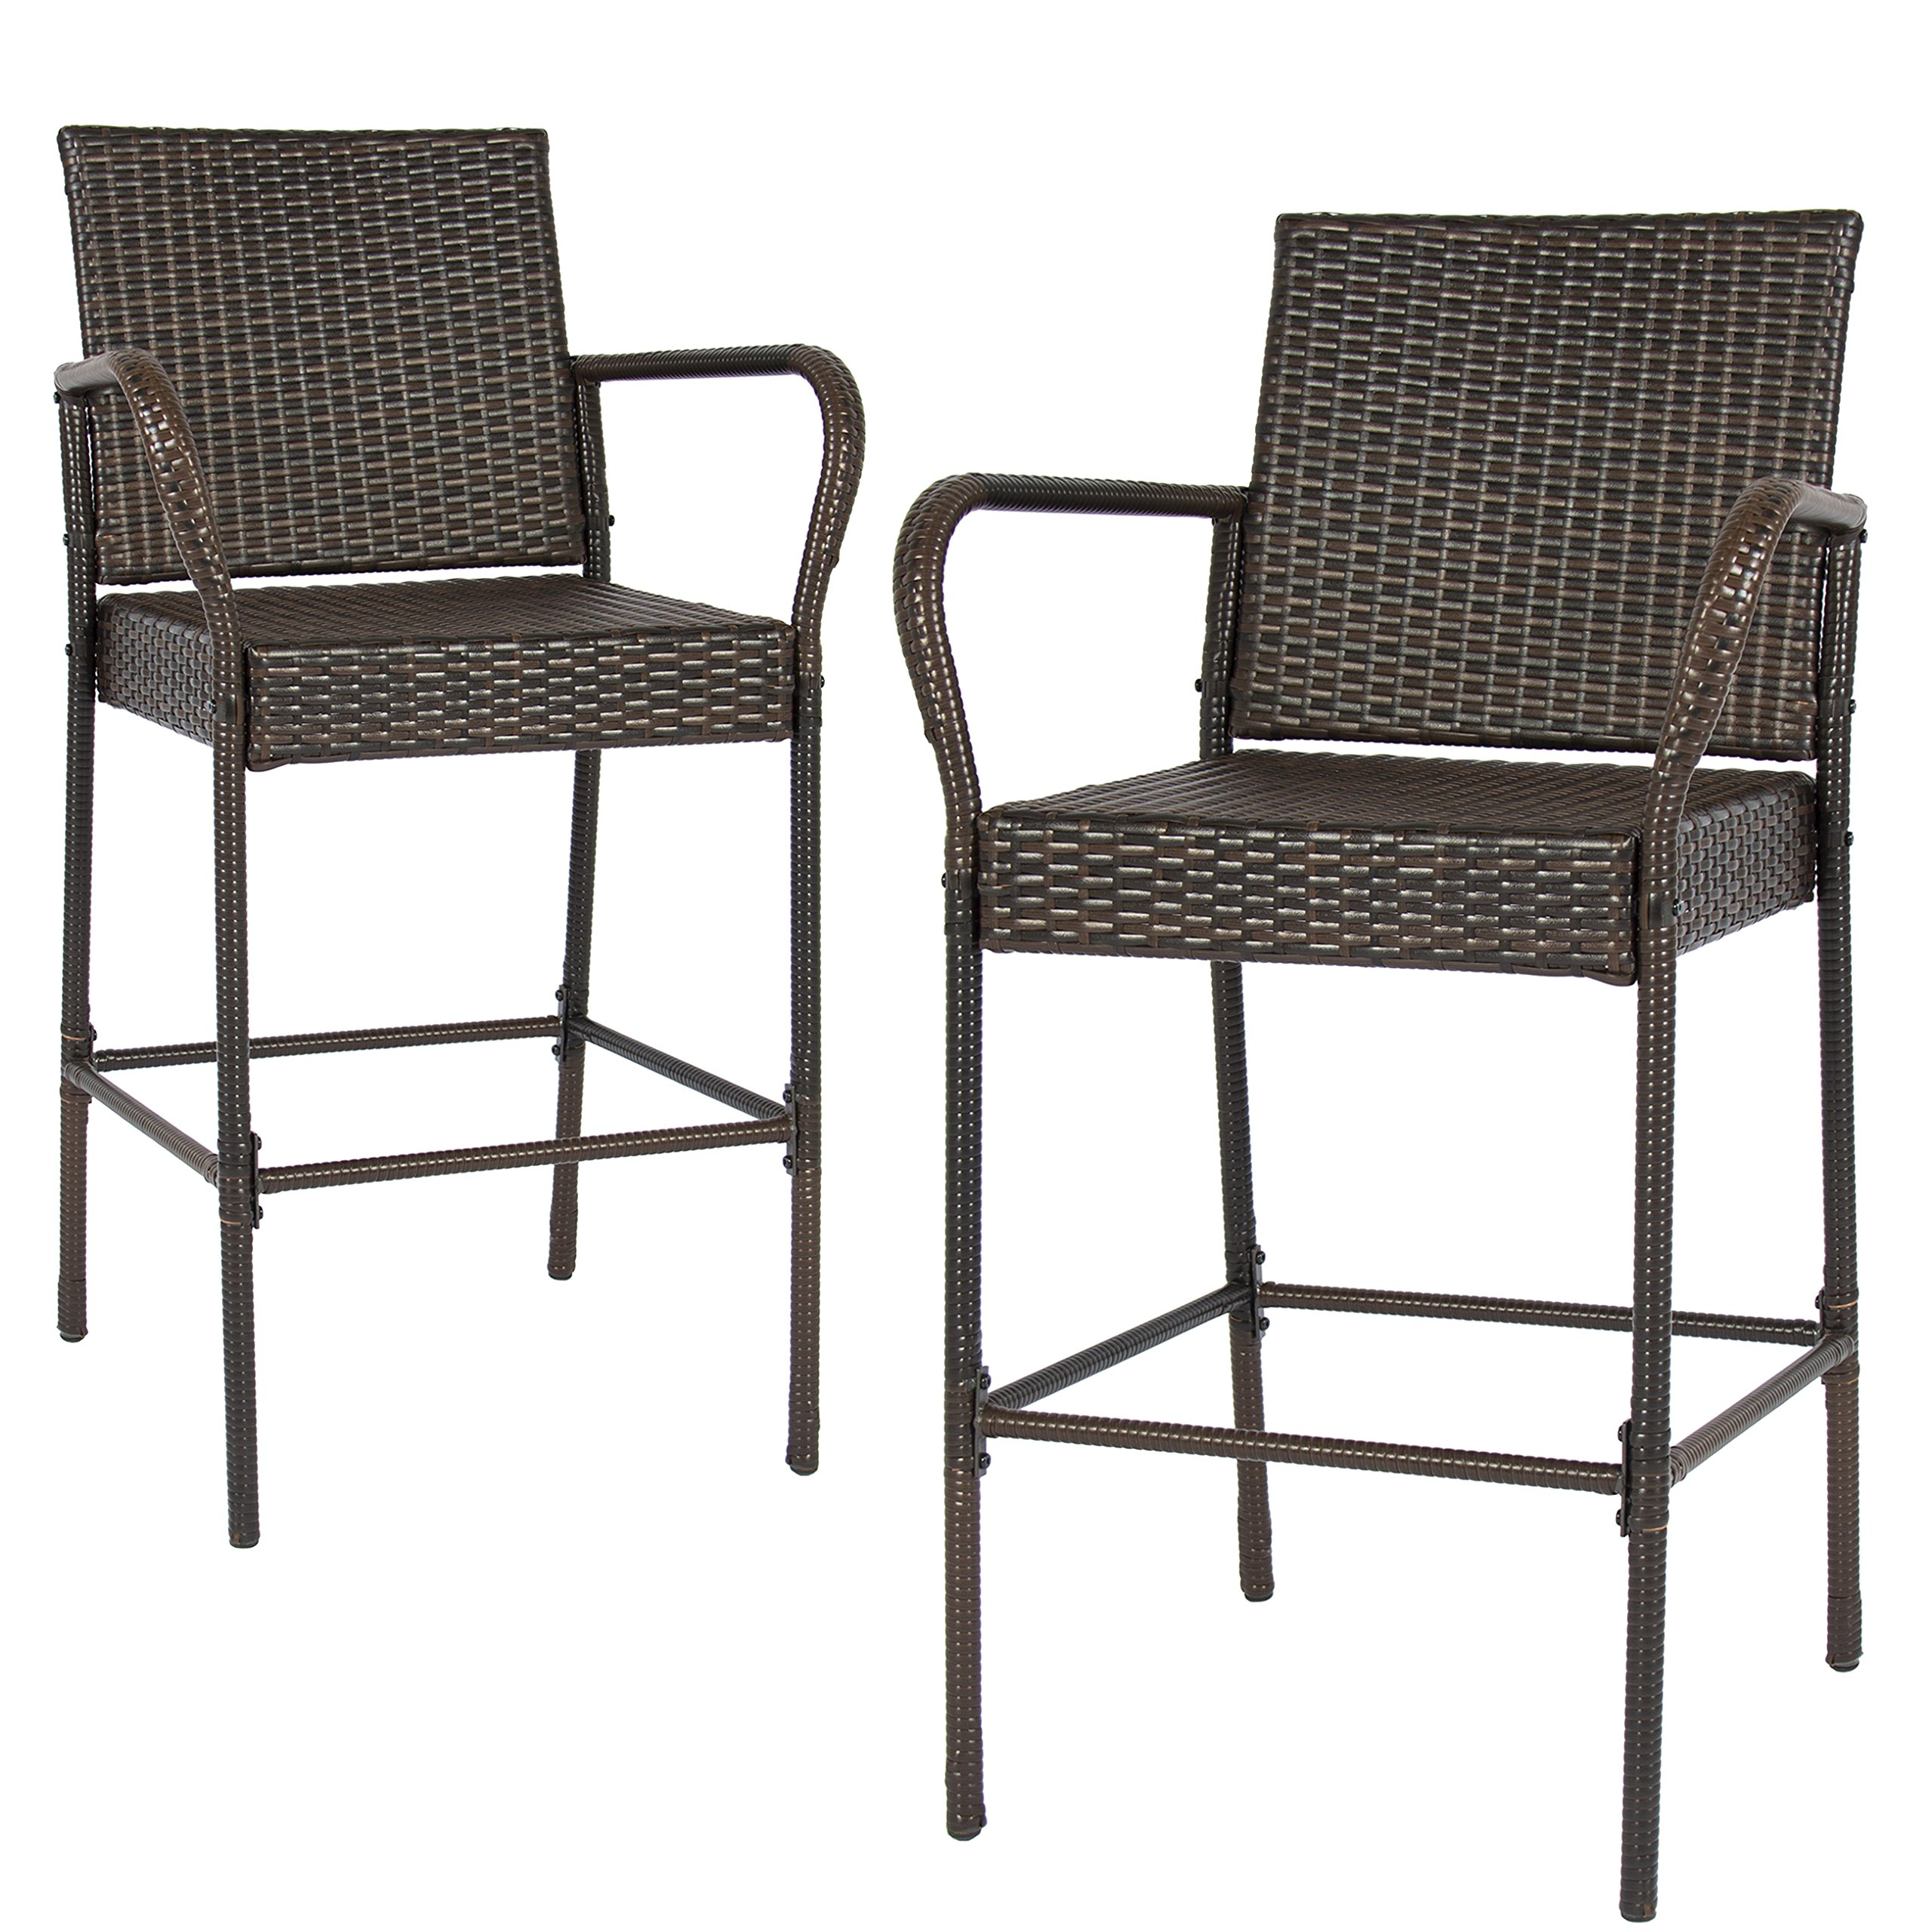 Best Choice Products Set of 2 Outdoor Brown Wicker Barstool Outdoor Patio Furniture Bar Stool by Best Choice Products (Image #2)